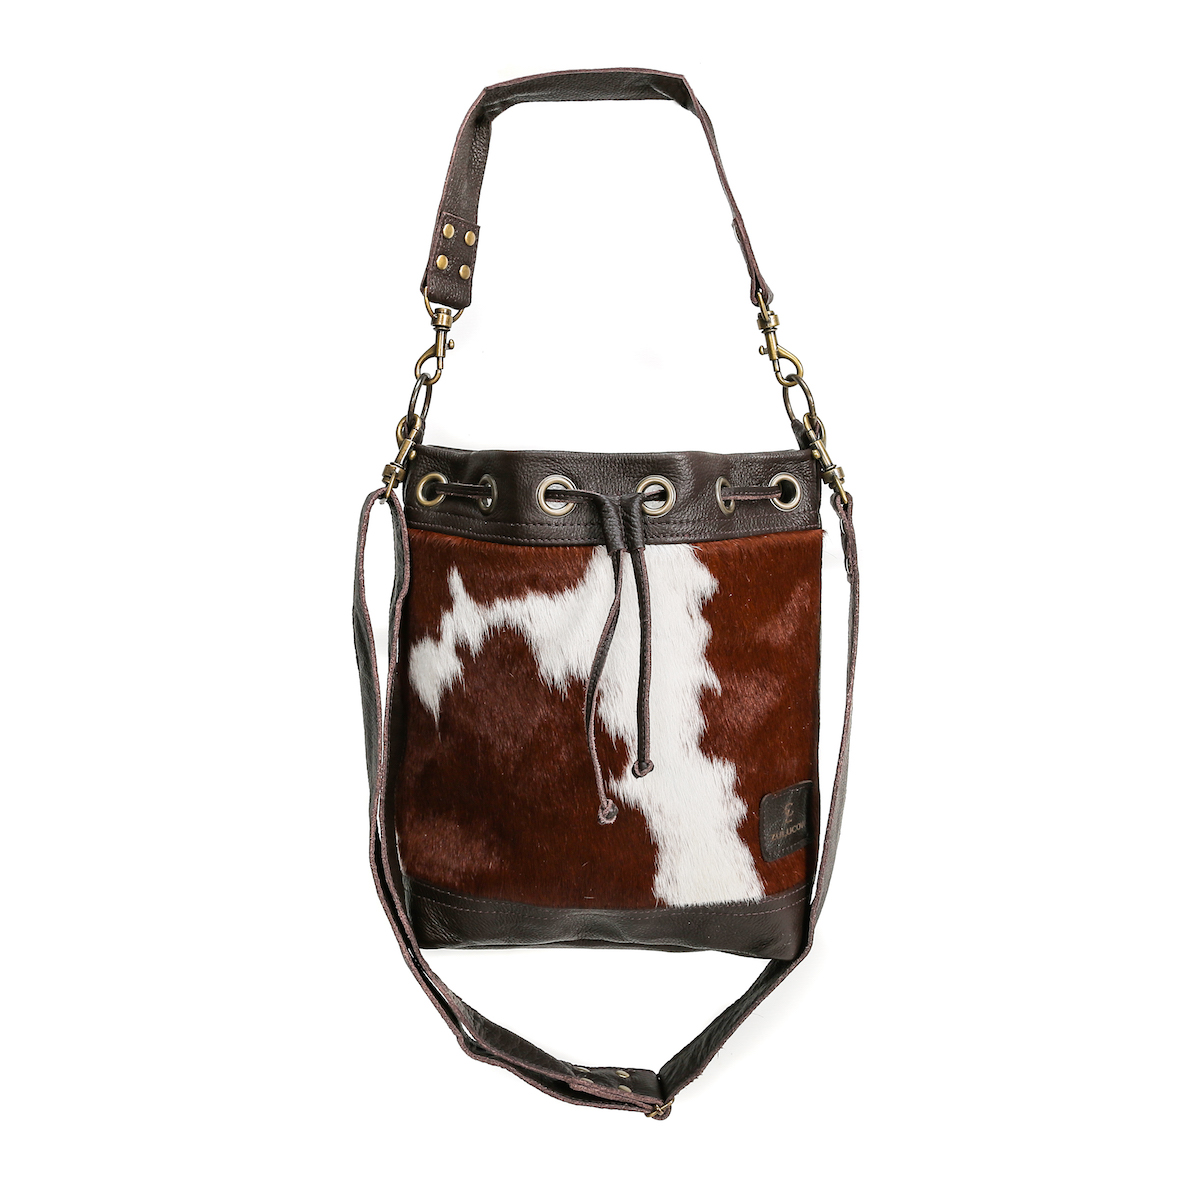 bags-leather-bucket-bags-cowhide-bags-brown and white, leather bags, fashion accessories, women's accessories, sustainable leather, handmade, ethical fashion